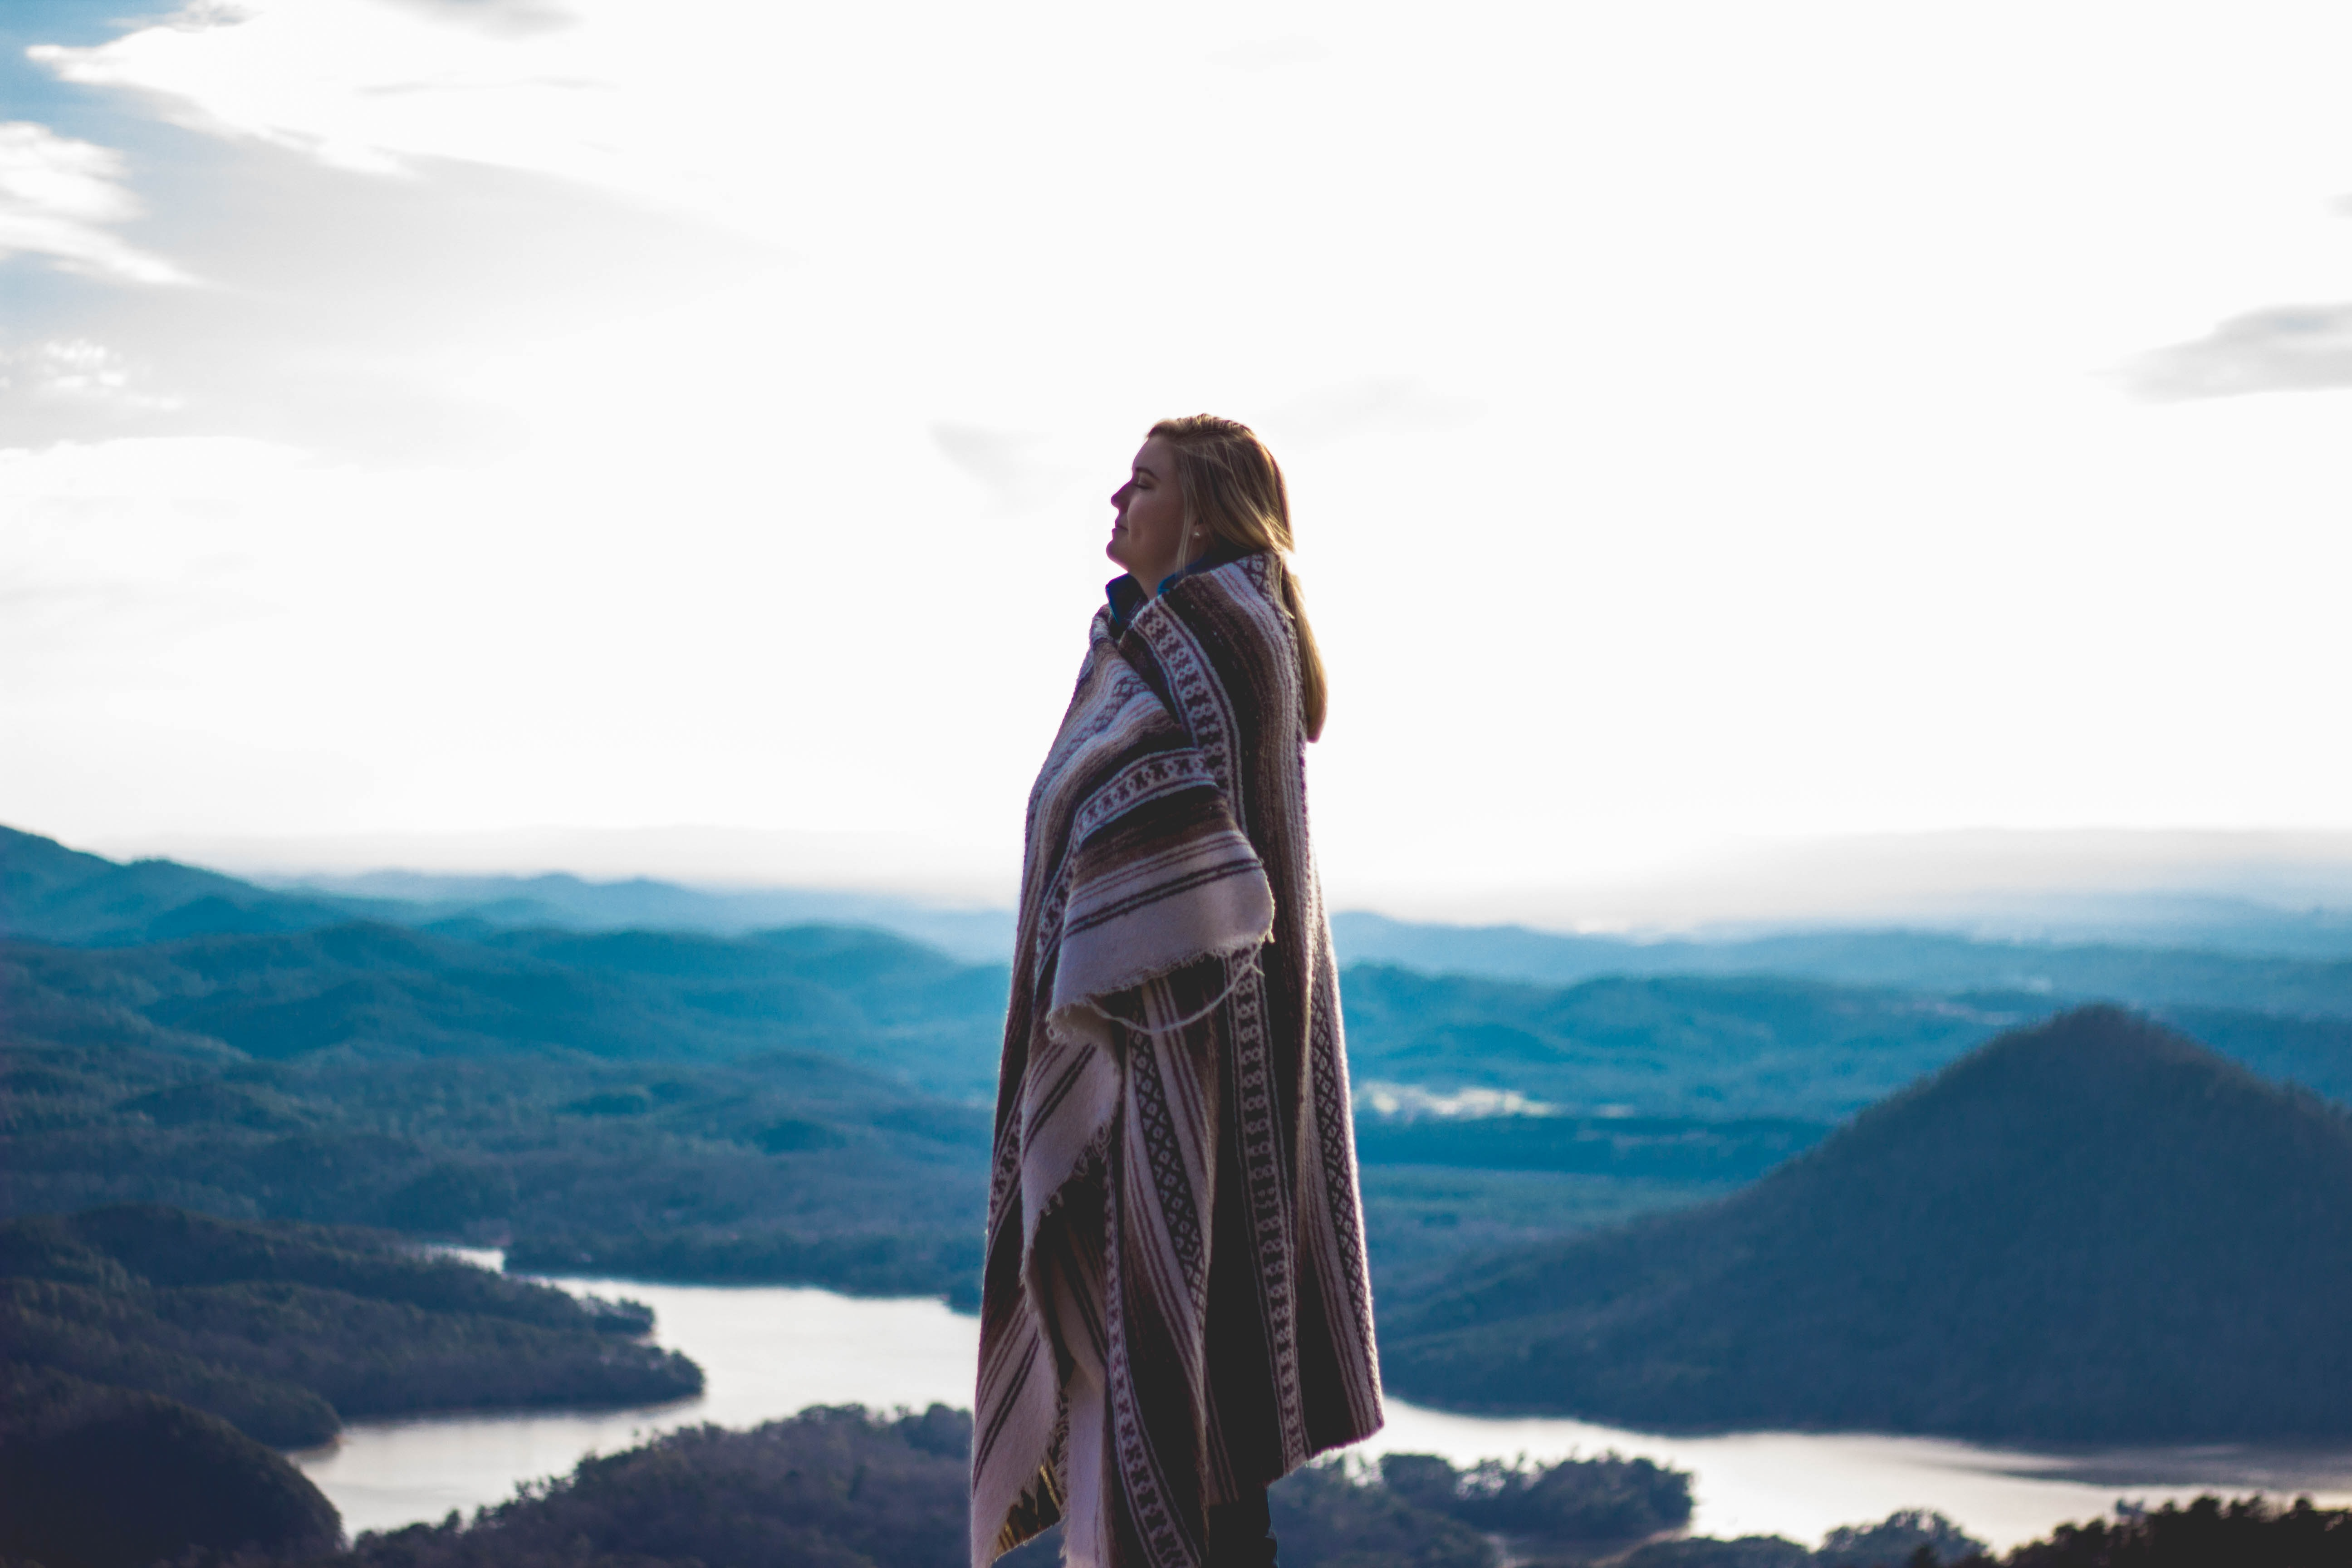 Person wrapped up in an oversized blanket shawl near the mountains